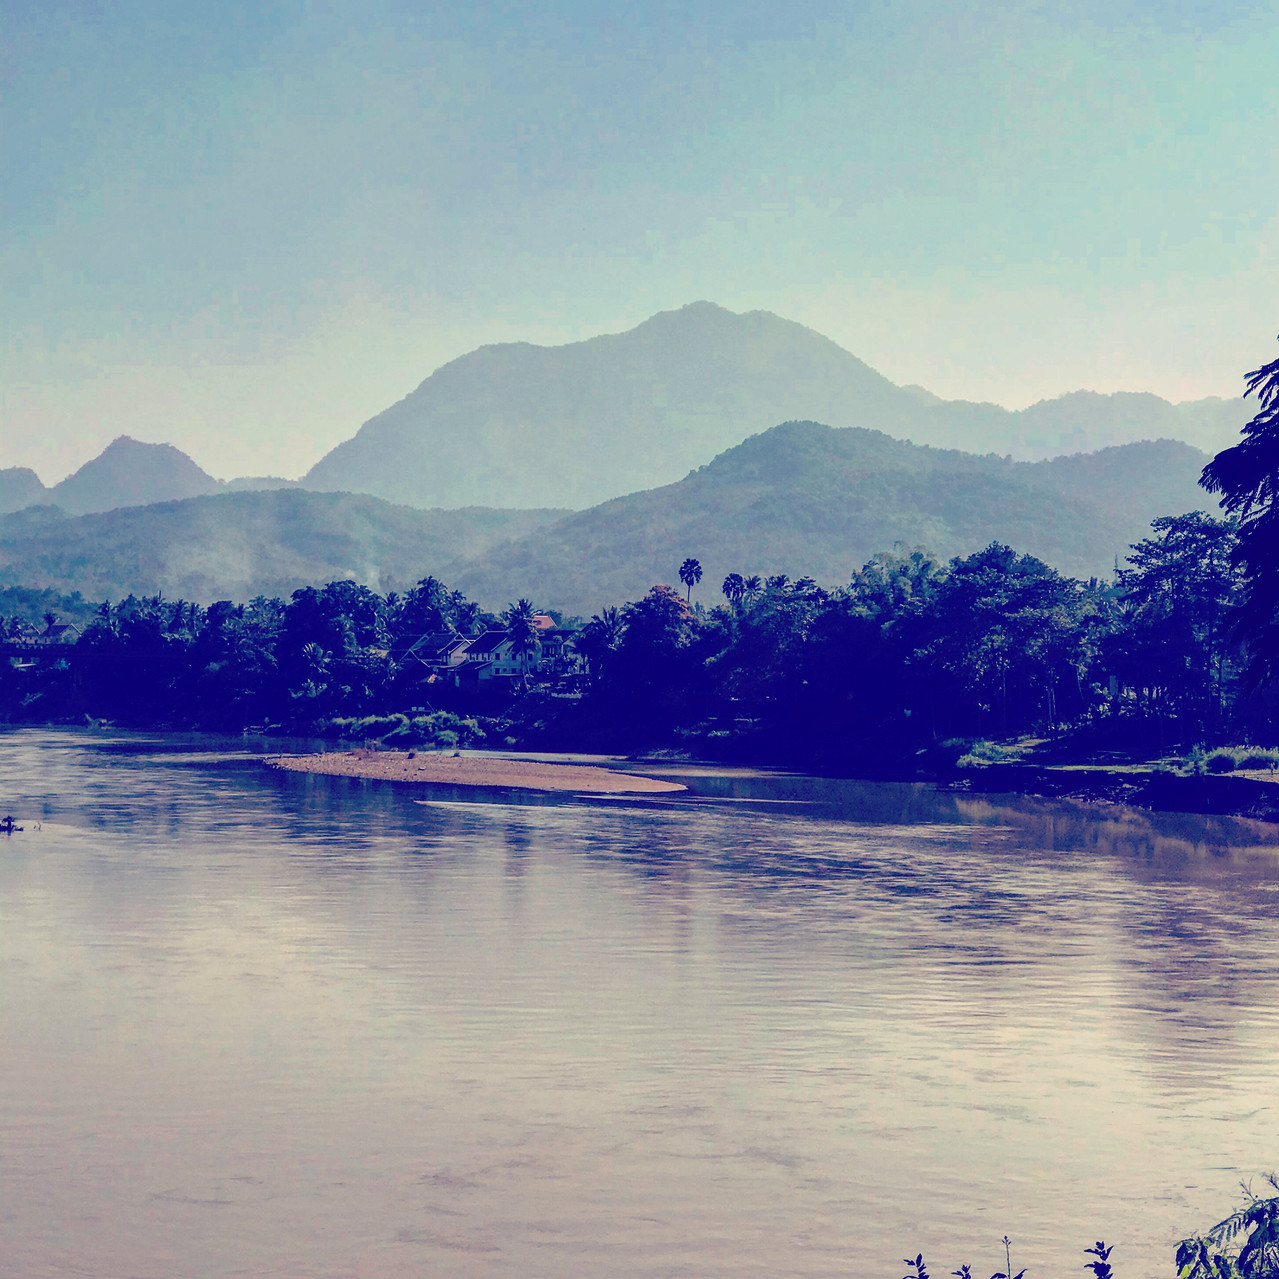 Lovely N. Laos mountains